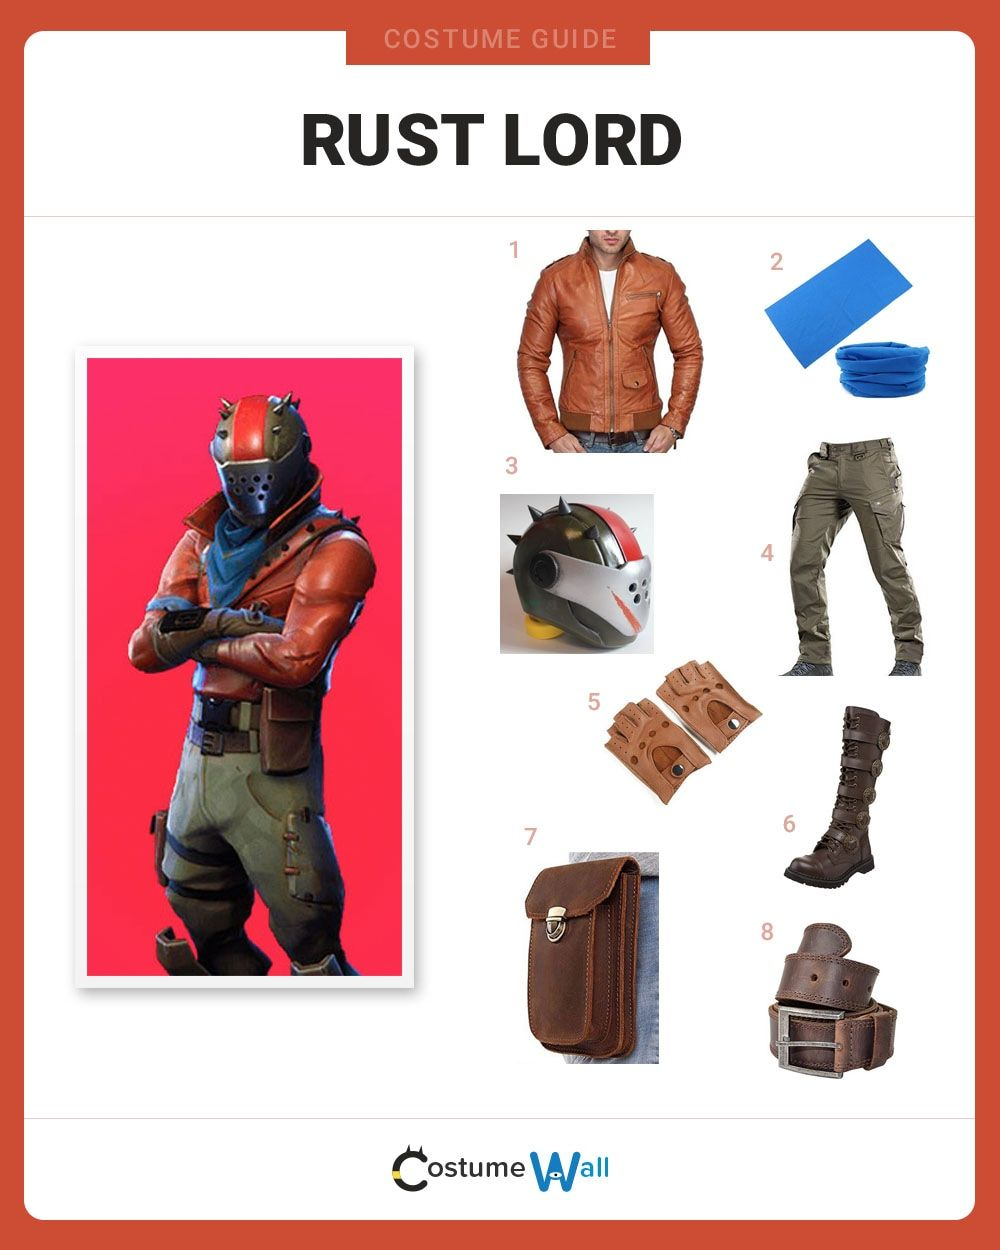 Dress Like Rust Lord From Fortnite Costume And Cosplay Guide